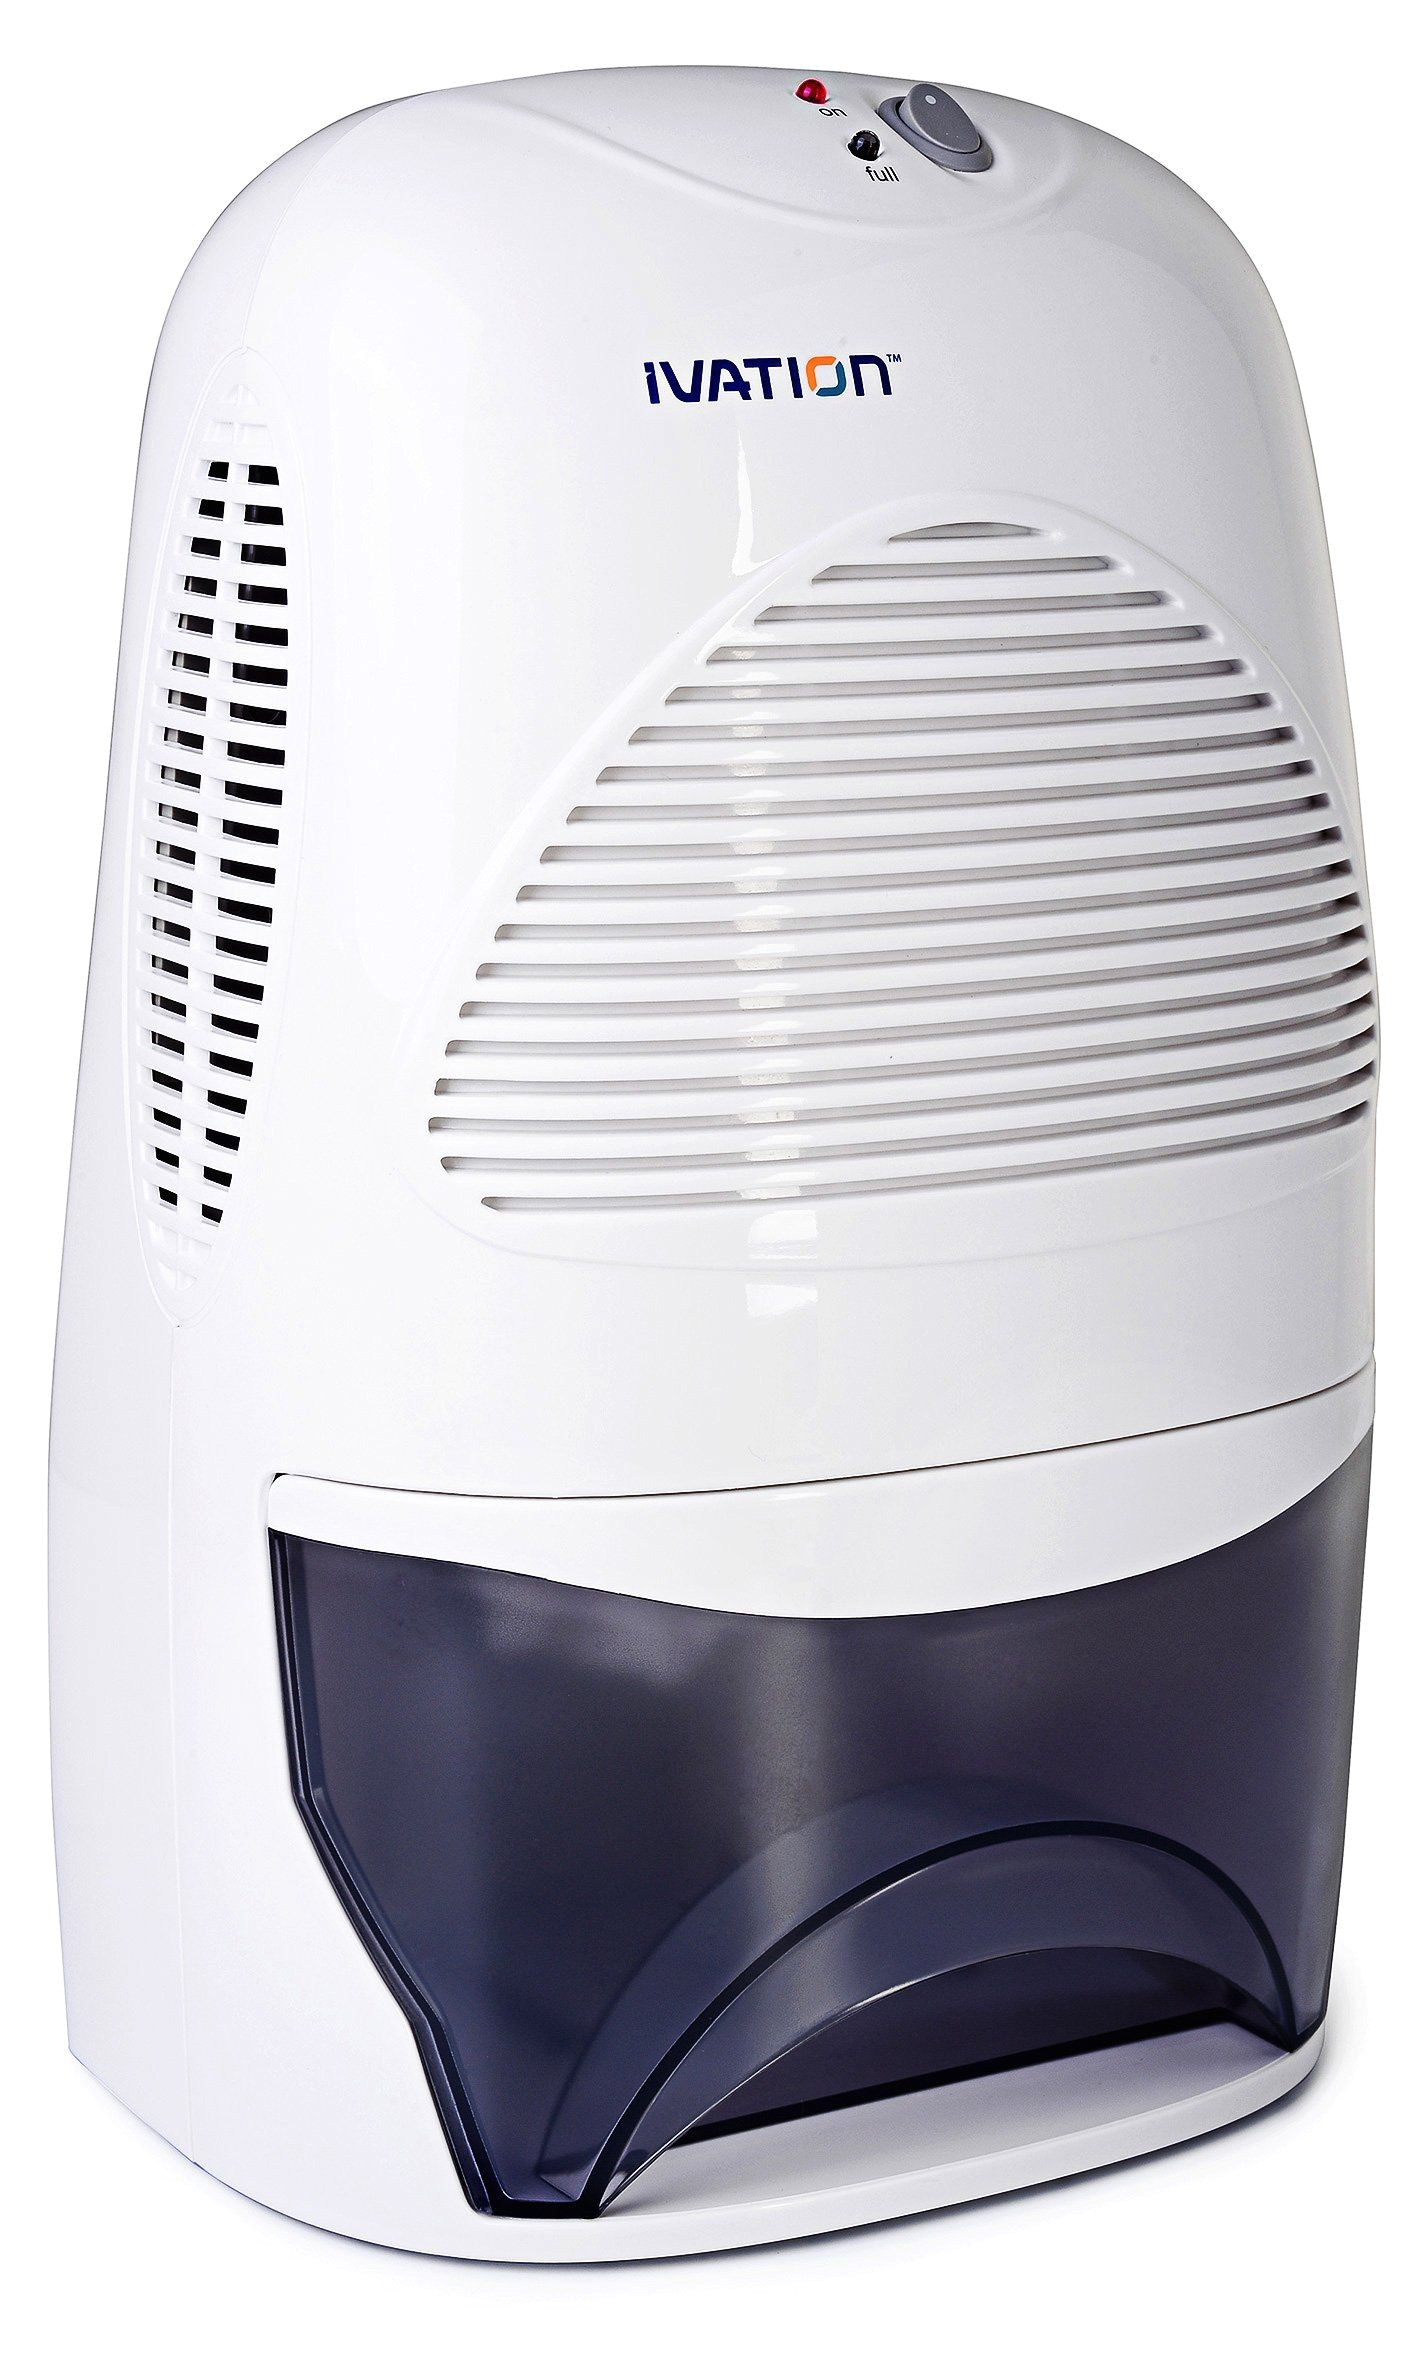 ivation ivadm35 powerful mid size thermo electric dehumidifier quietly gathers up to 20 ounces of water per day for bath room basement attic boats